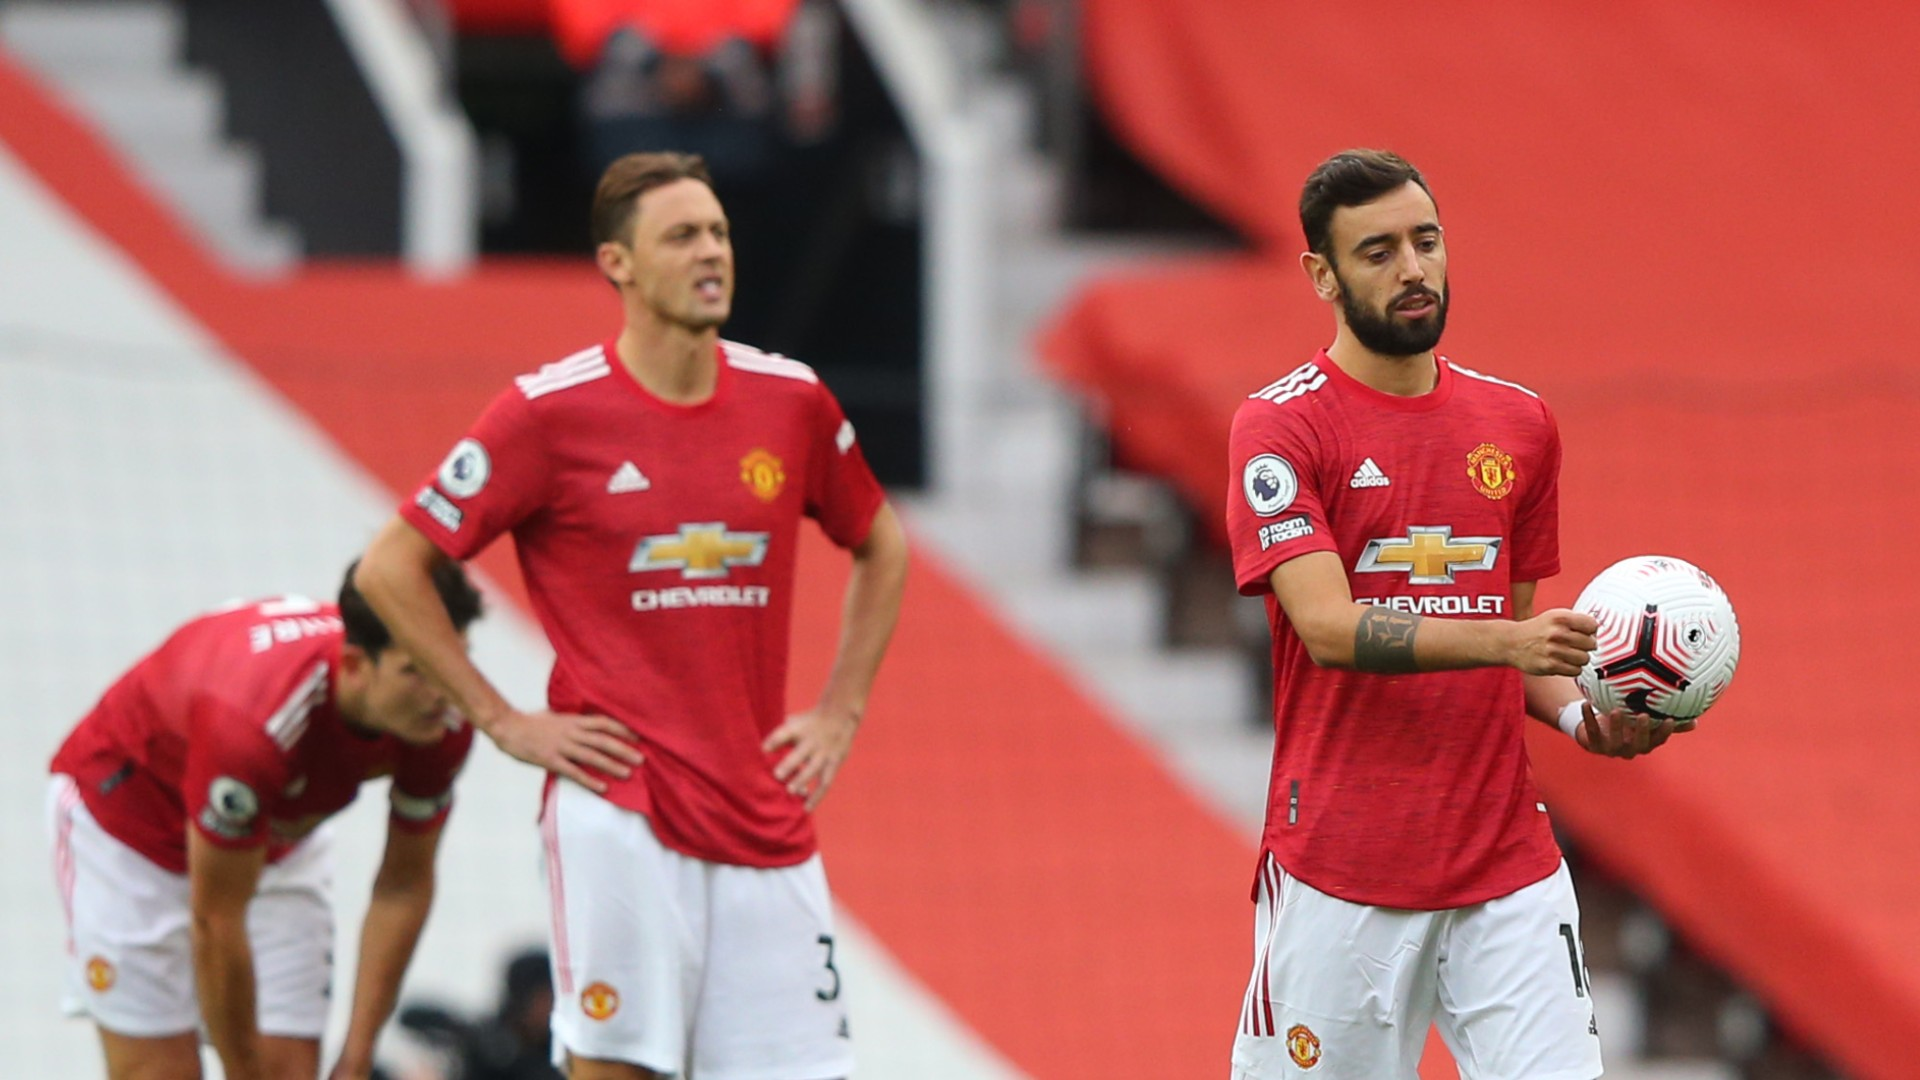 Man Utd's four-month winless home run puzzles Tuanzebe as Old Trafford struggles continue